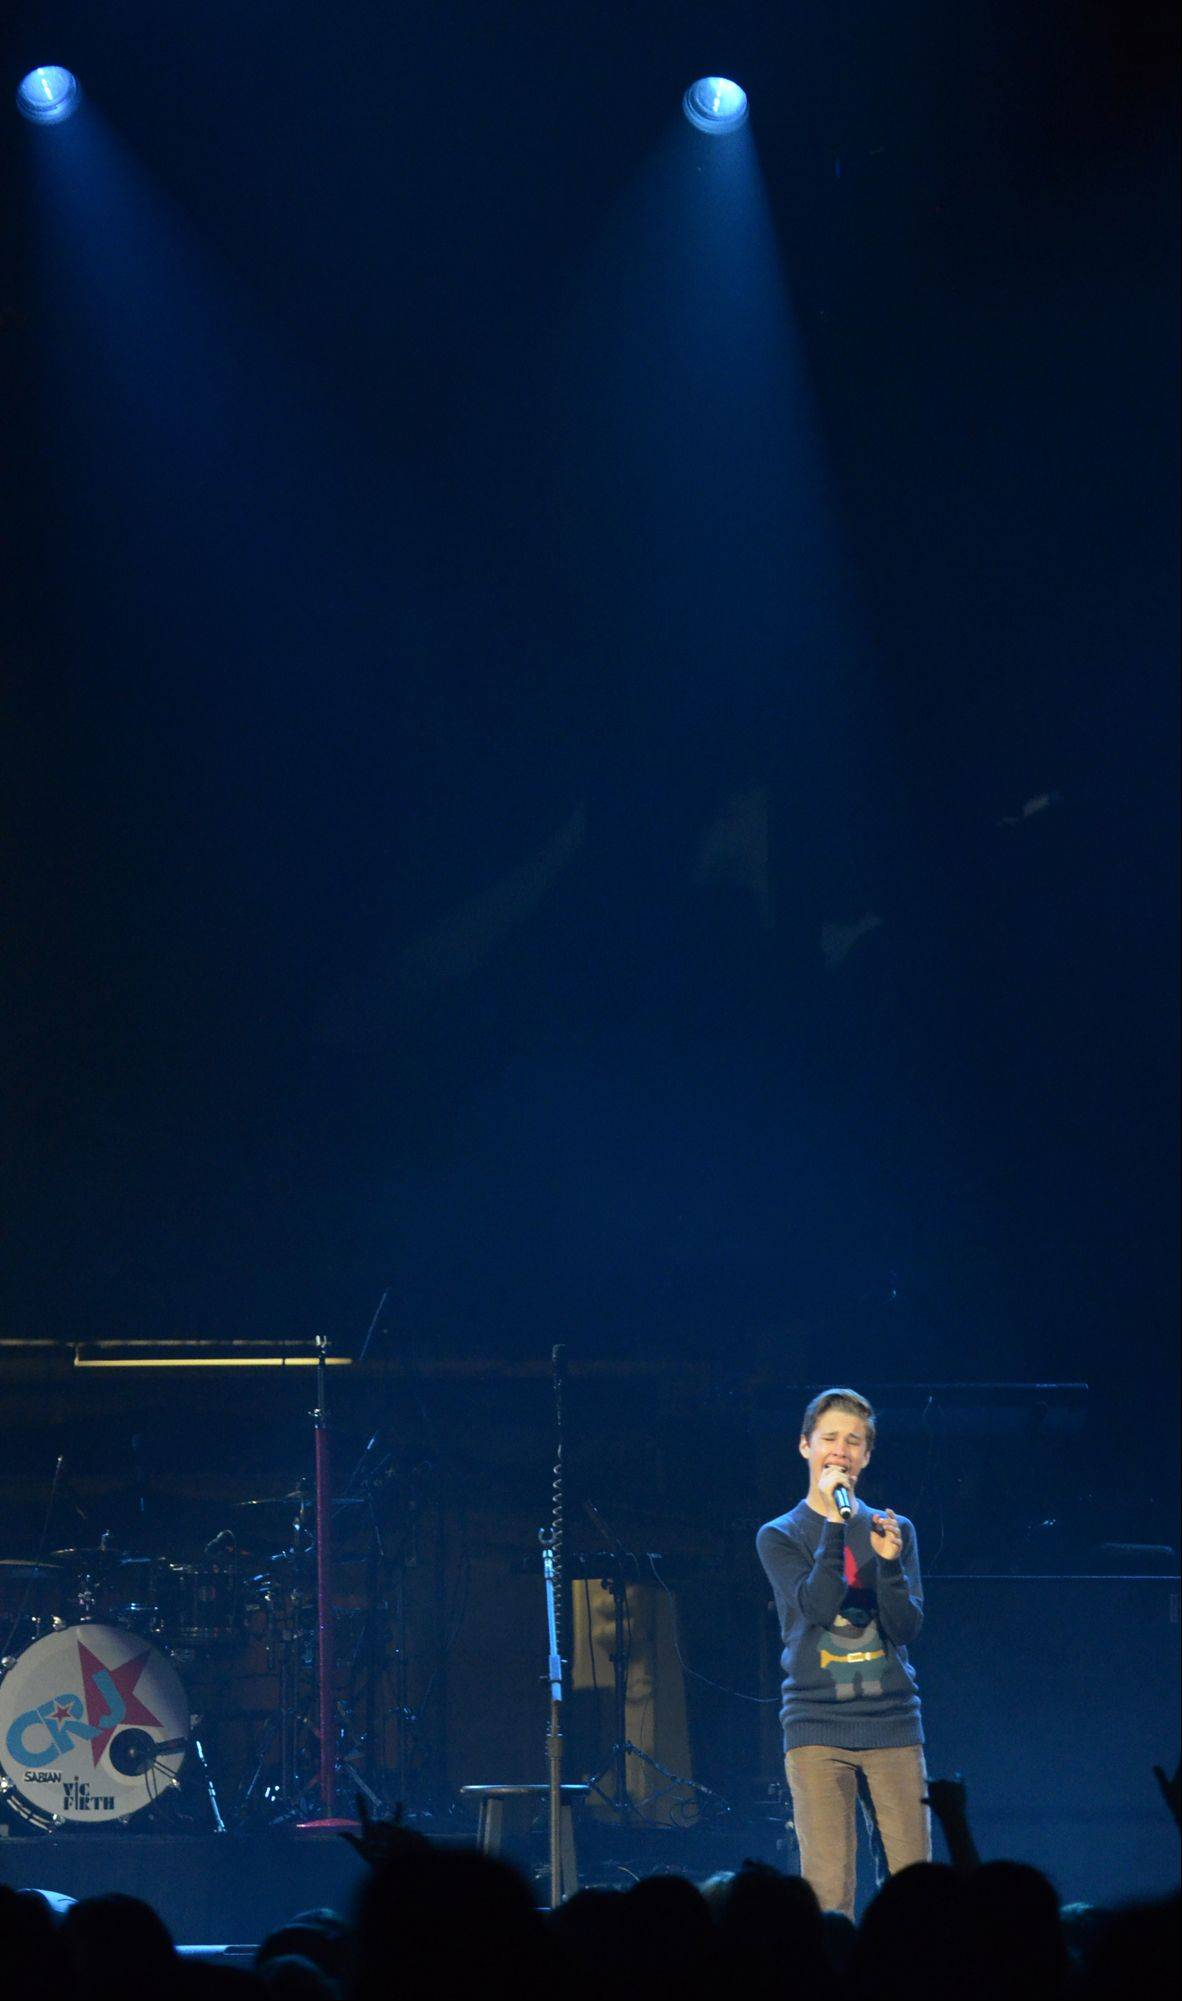 Ryan Beatty performs during the Jingle Bash concert at the Allstate Arena in Rosemont on Saturday, December 15th, 2012.